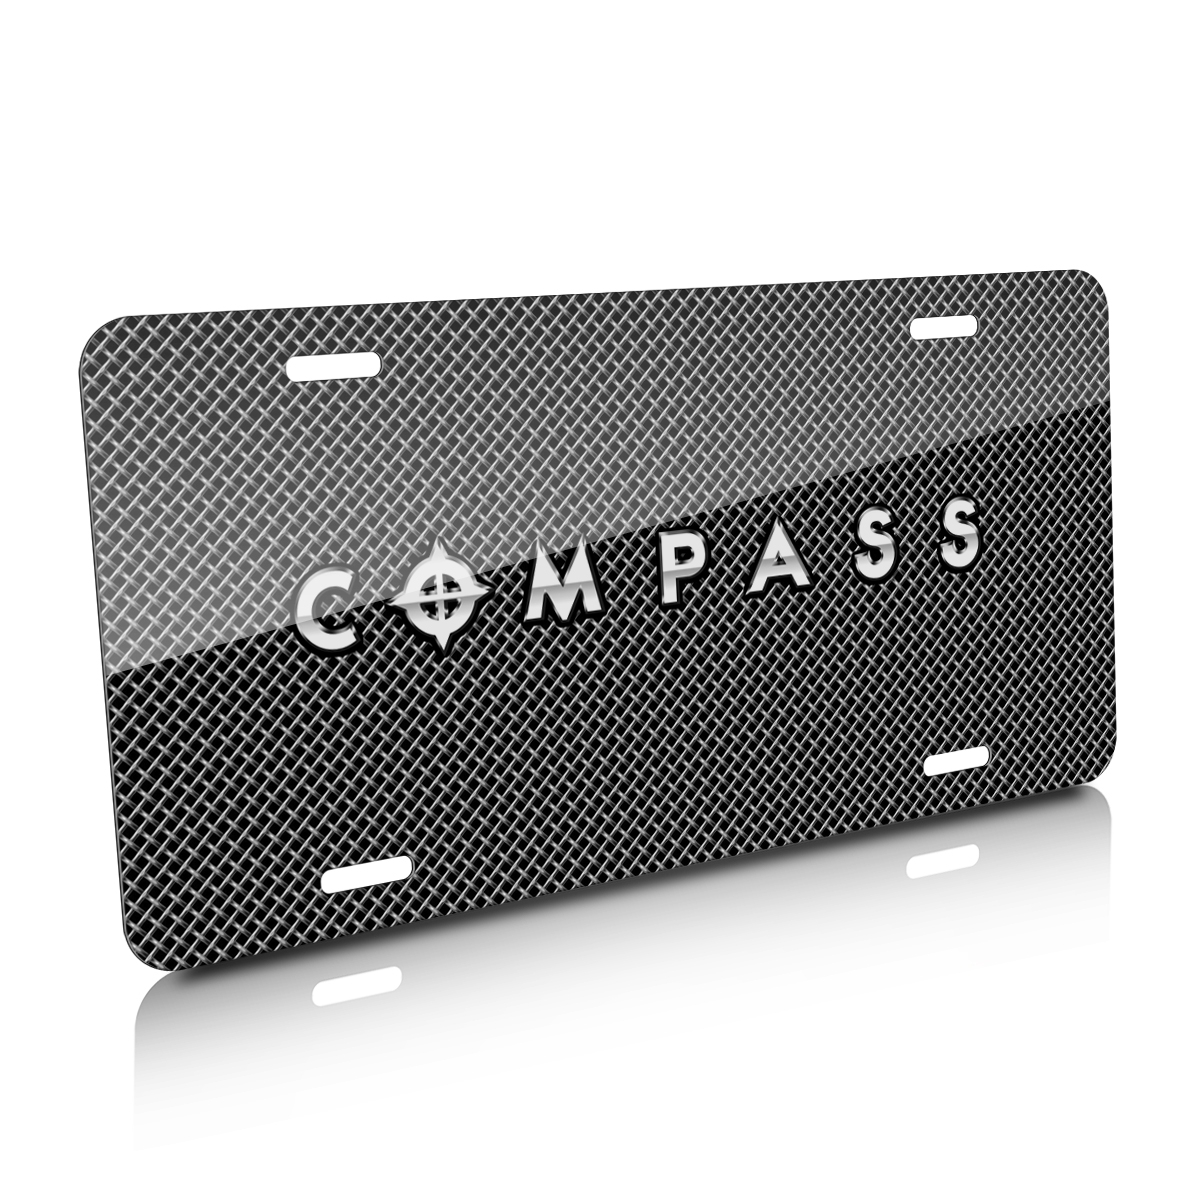 Jeep Compass Mesh Grill Graphic Aluminum License Plate